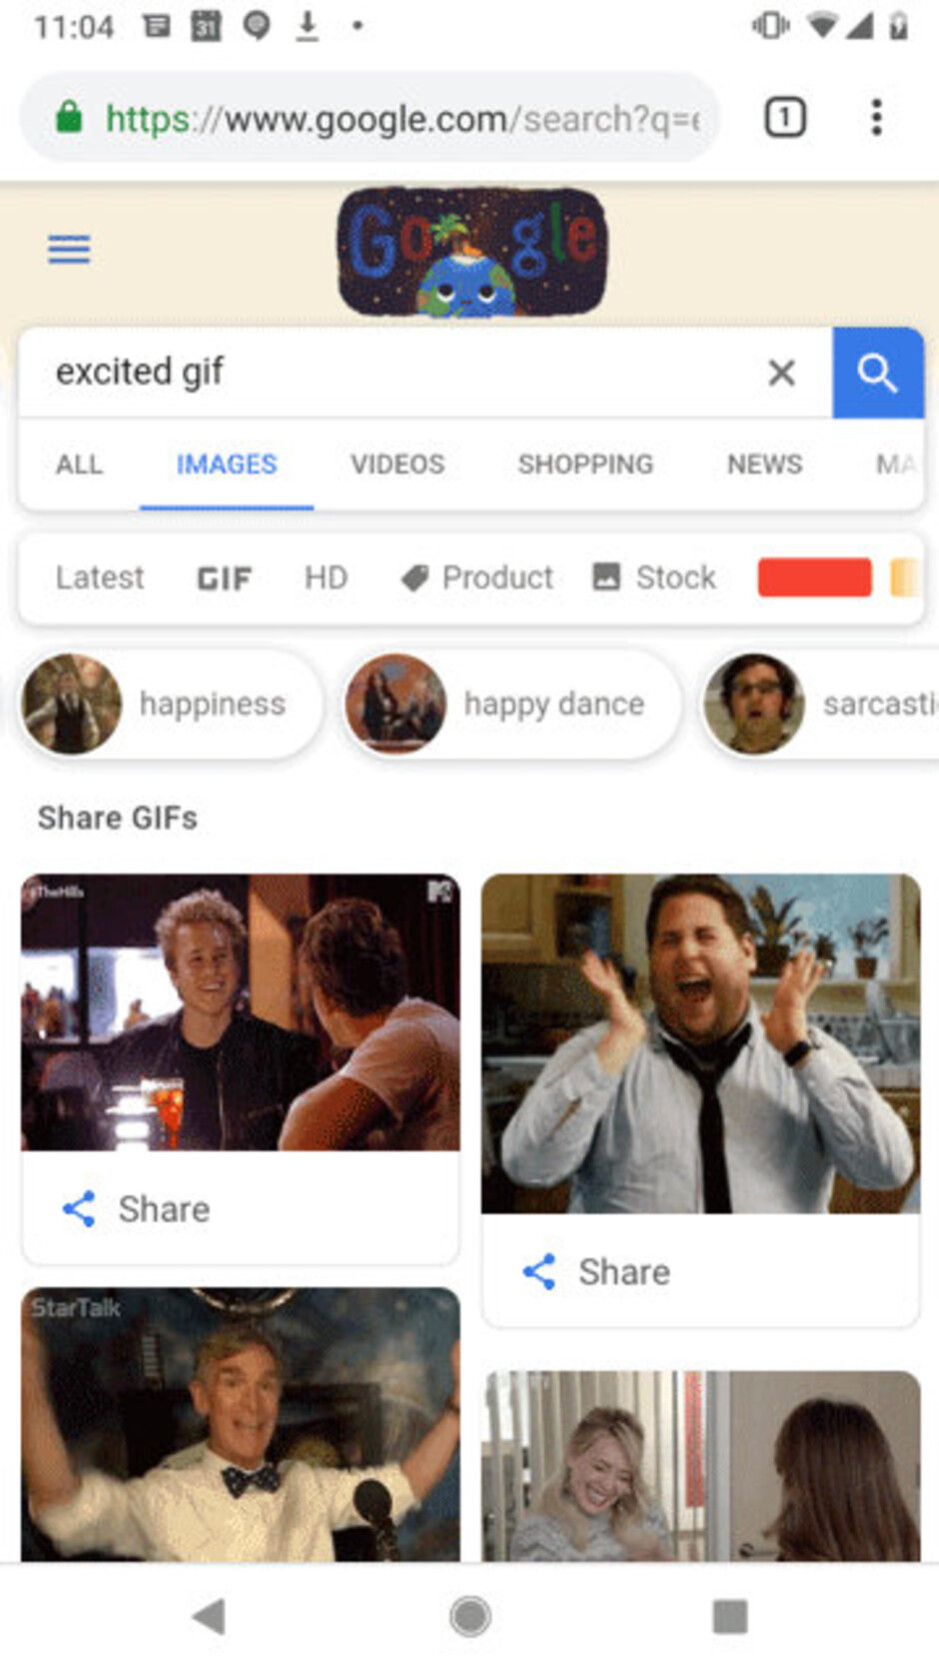 Google lets users share GIFs directly into Gmail, WhatsApp, other apps